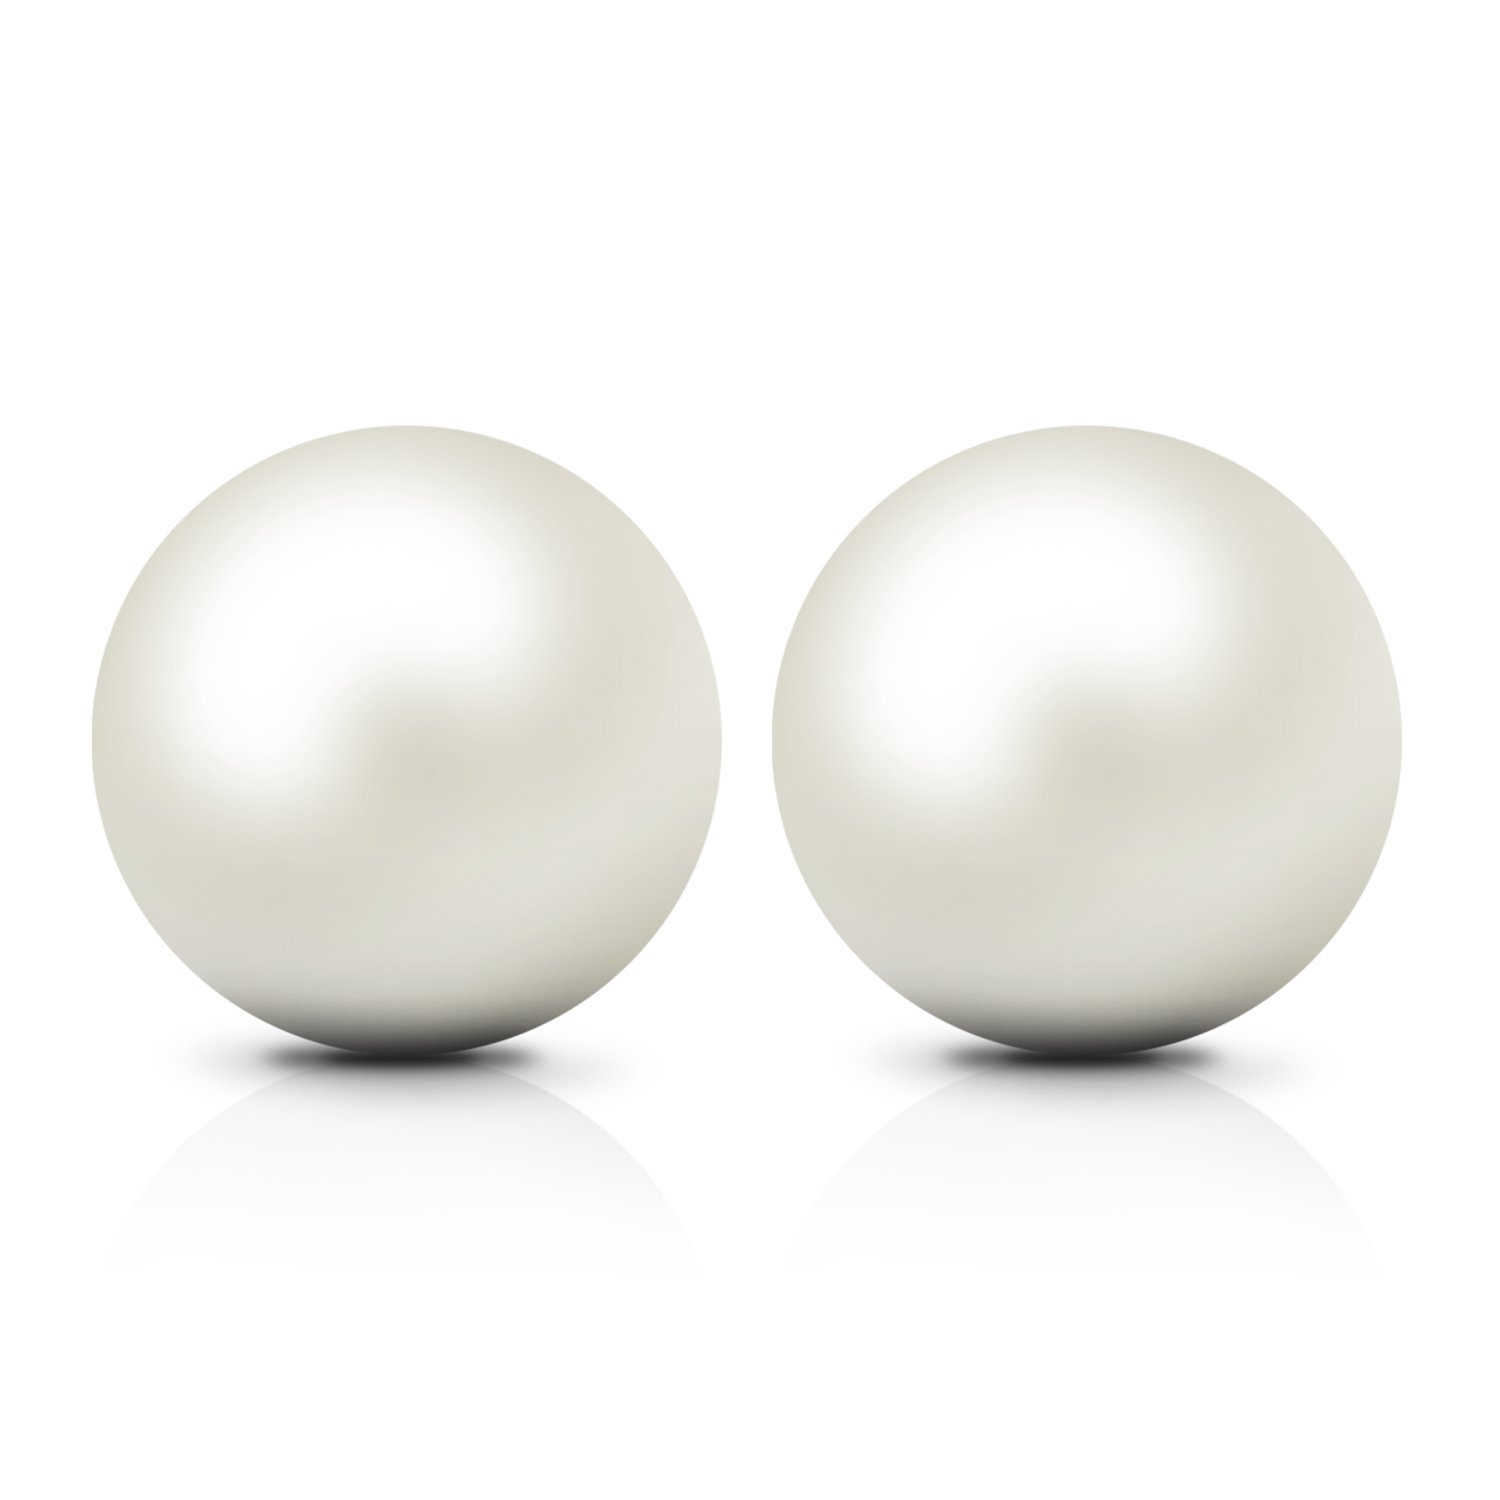 JewelryPalace Women's 6-10mm Freshwater Cultured Pearl Button Ball Stud Earrings 925 Sterling Silver AE300221